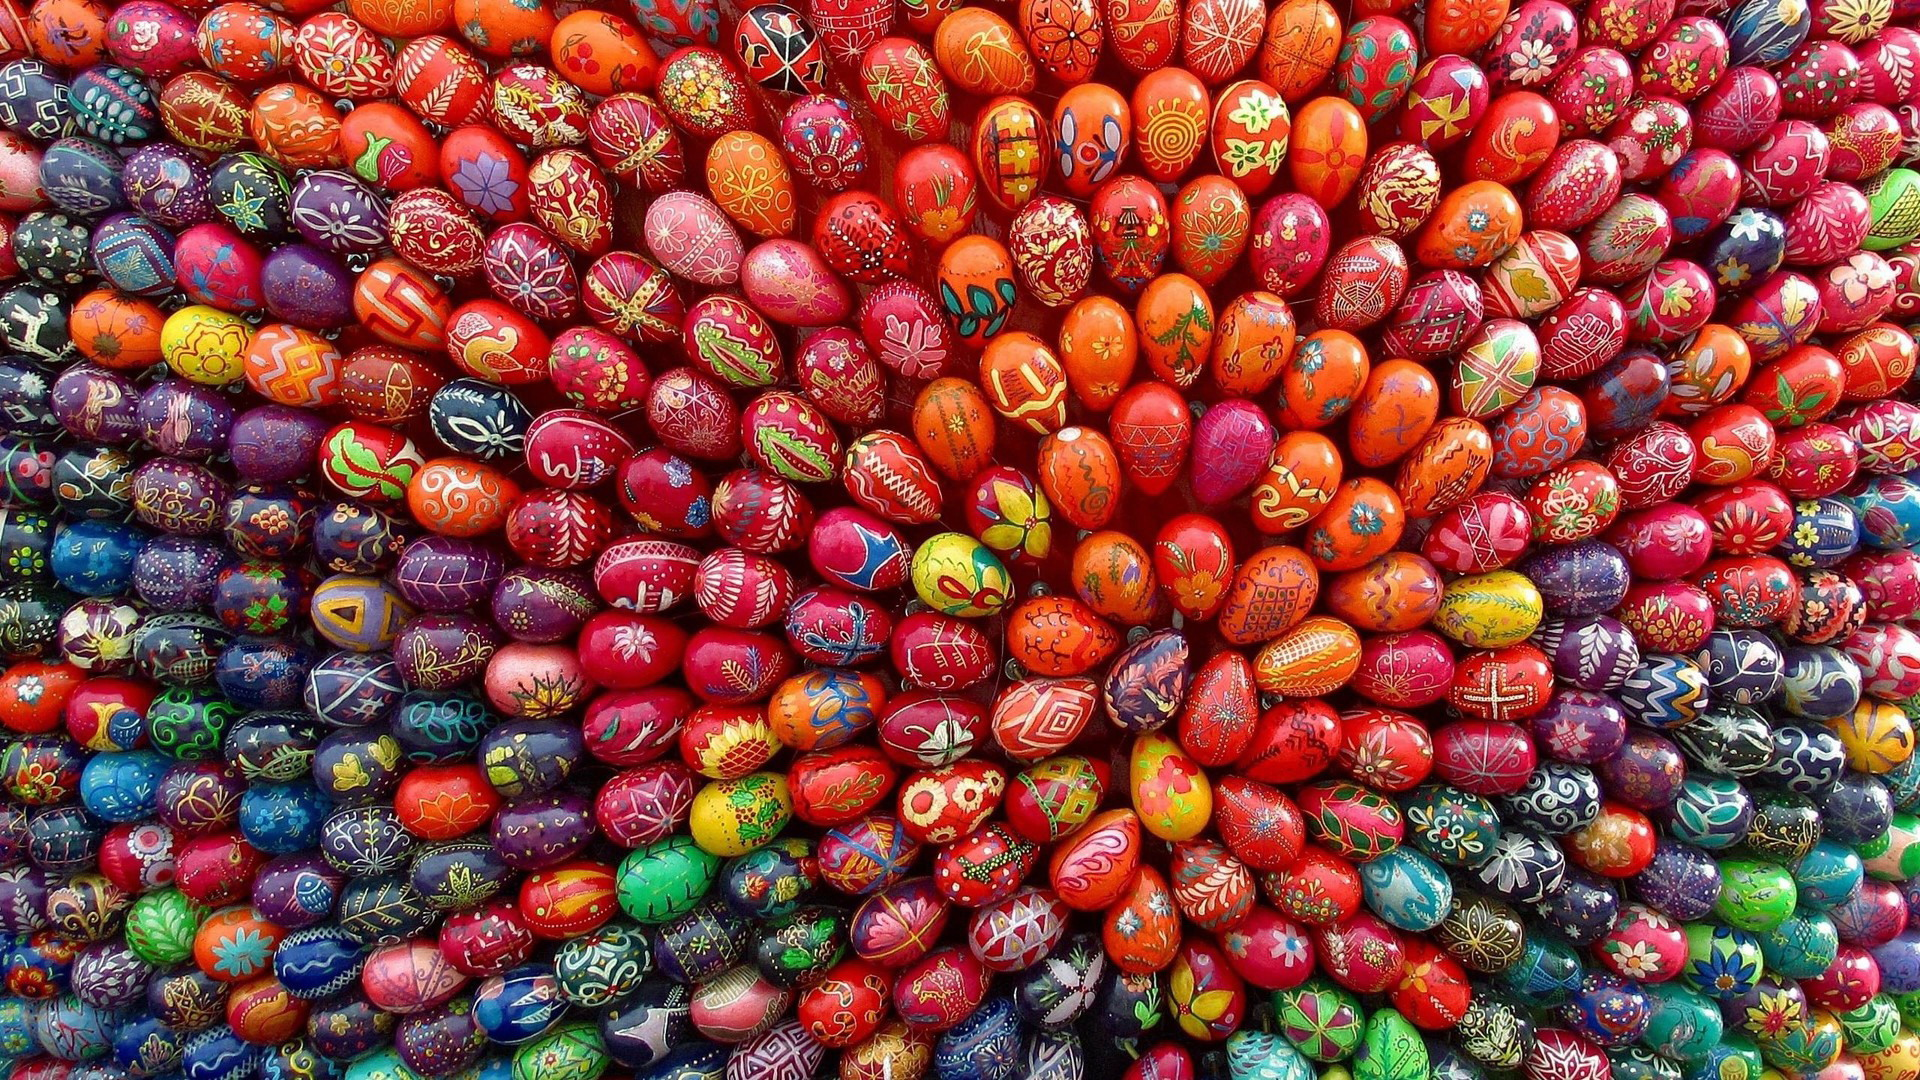 Easter Eggs - paint them, hide them, eat them, collect them!